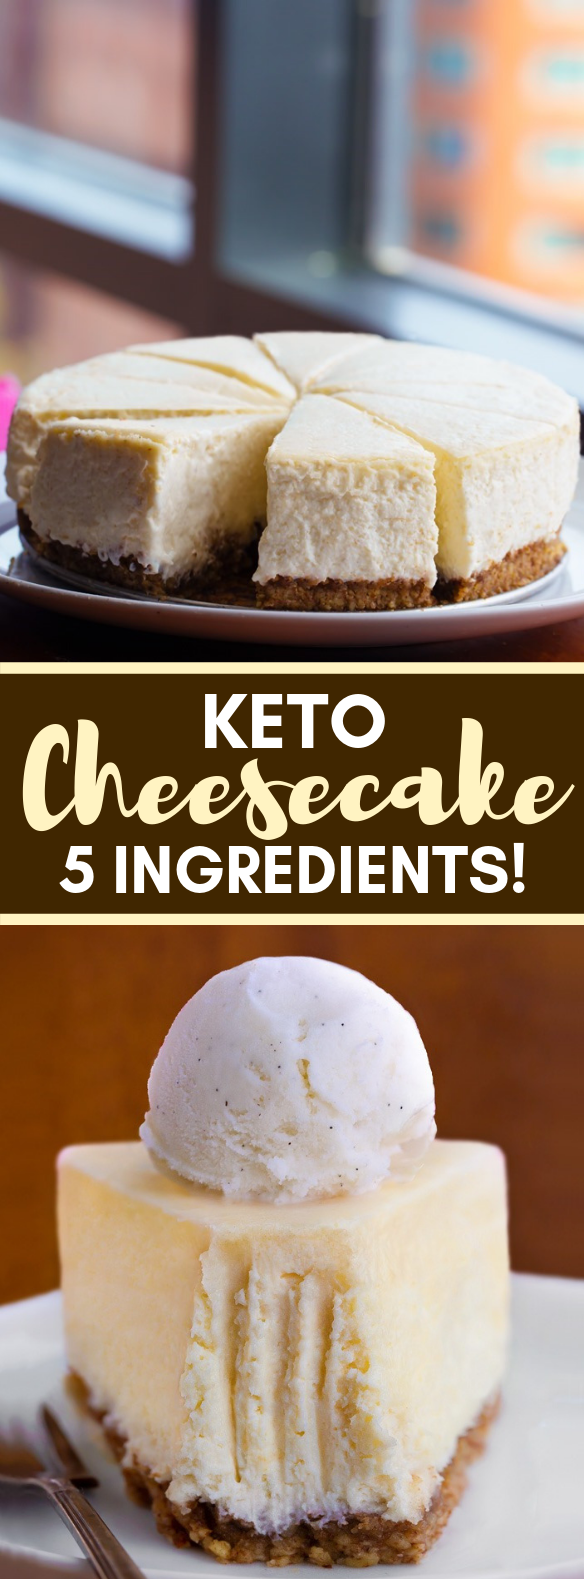 Keto Cheesecake – Just 5 Ingredients! #healthydiet #ketogenic